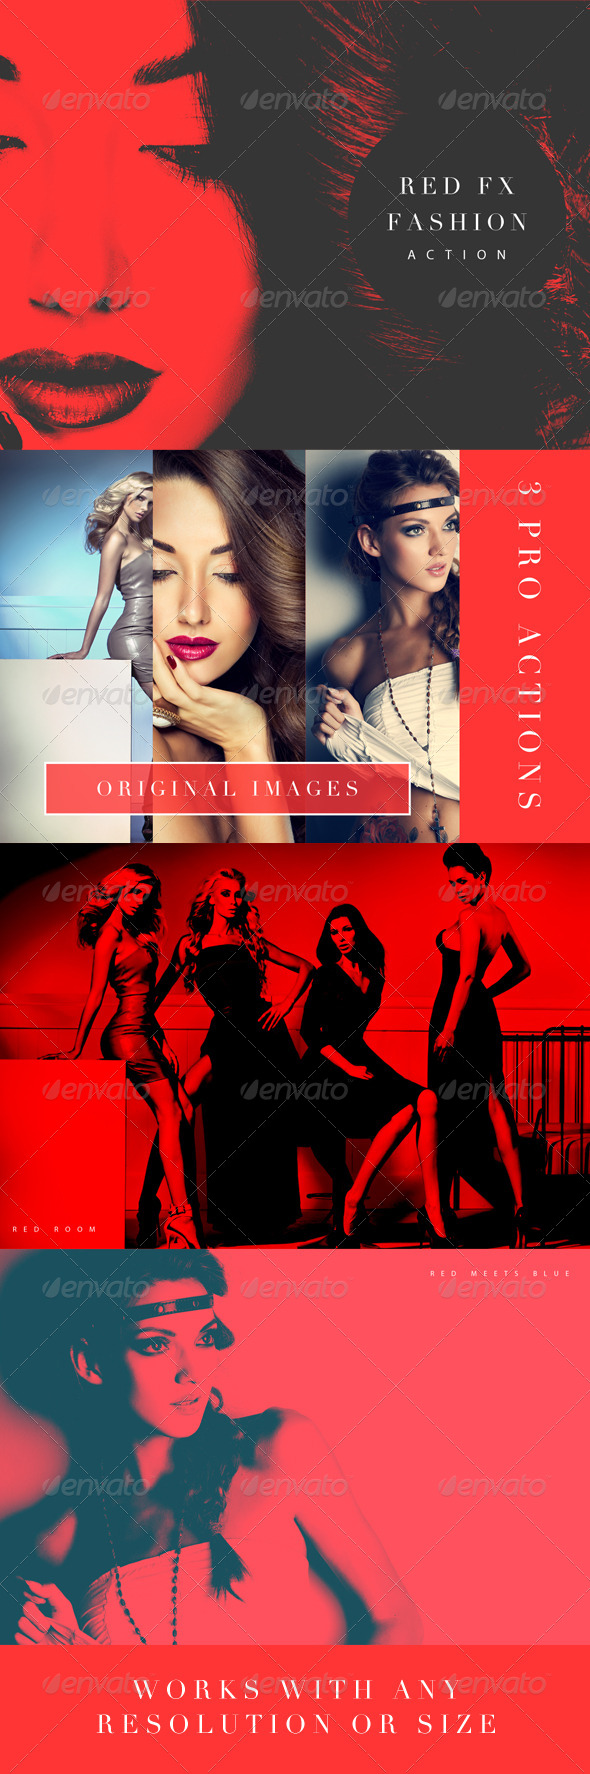 GraphicRiver Red FX Fashion Photoshop Action 8642459